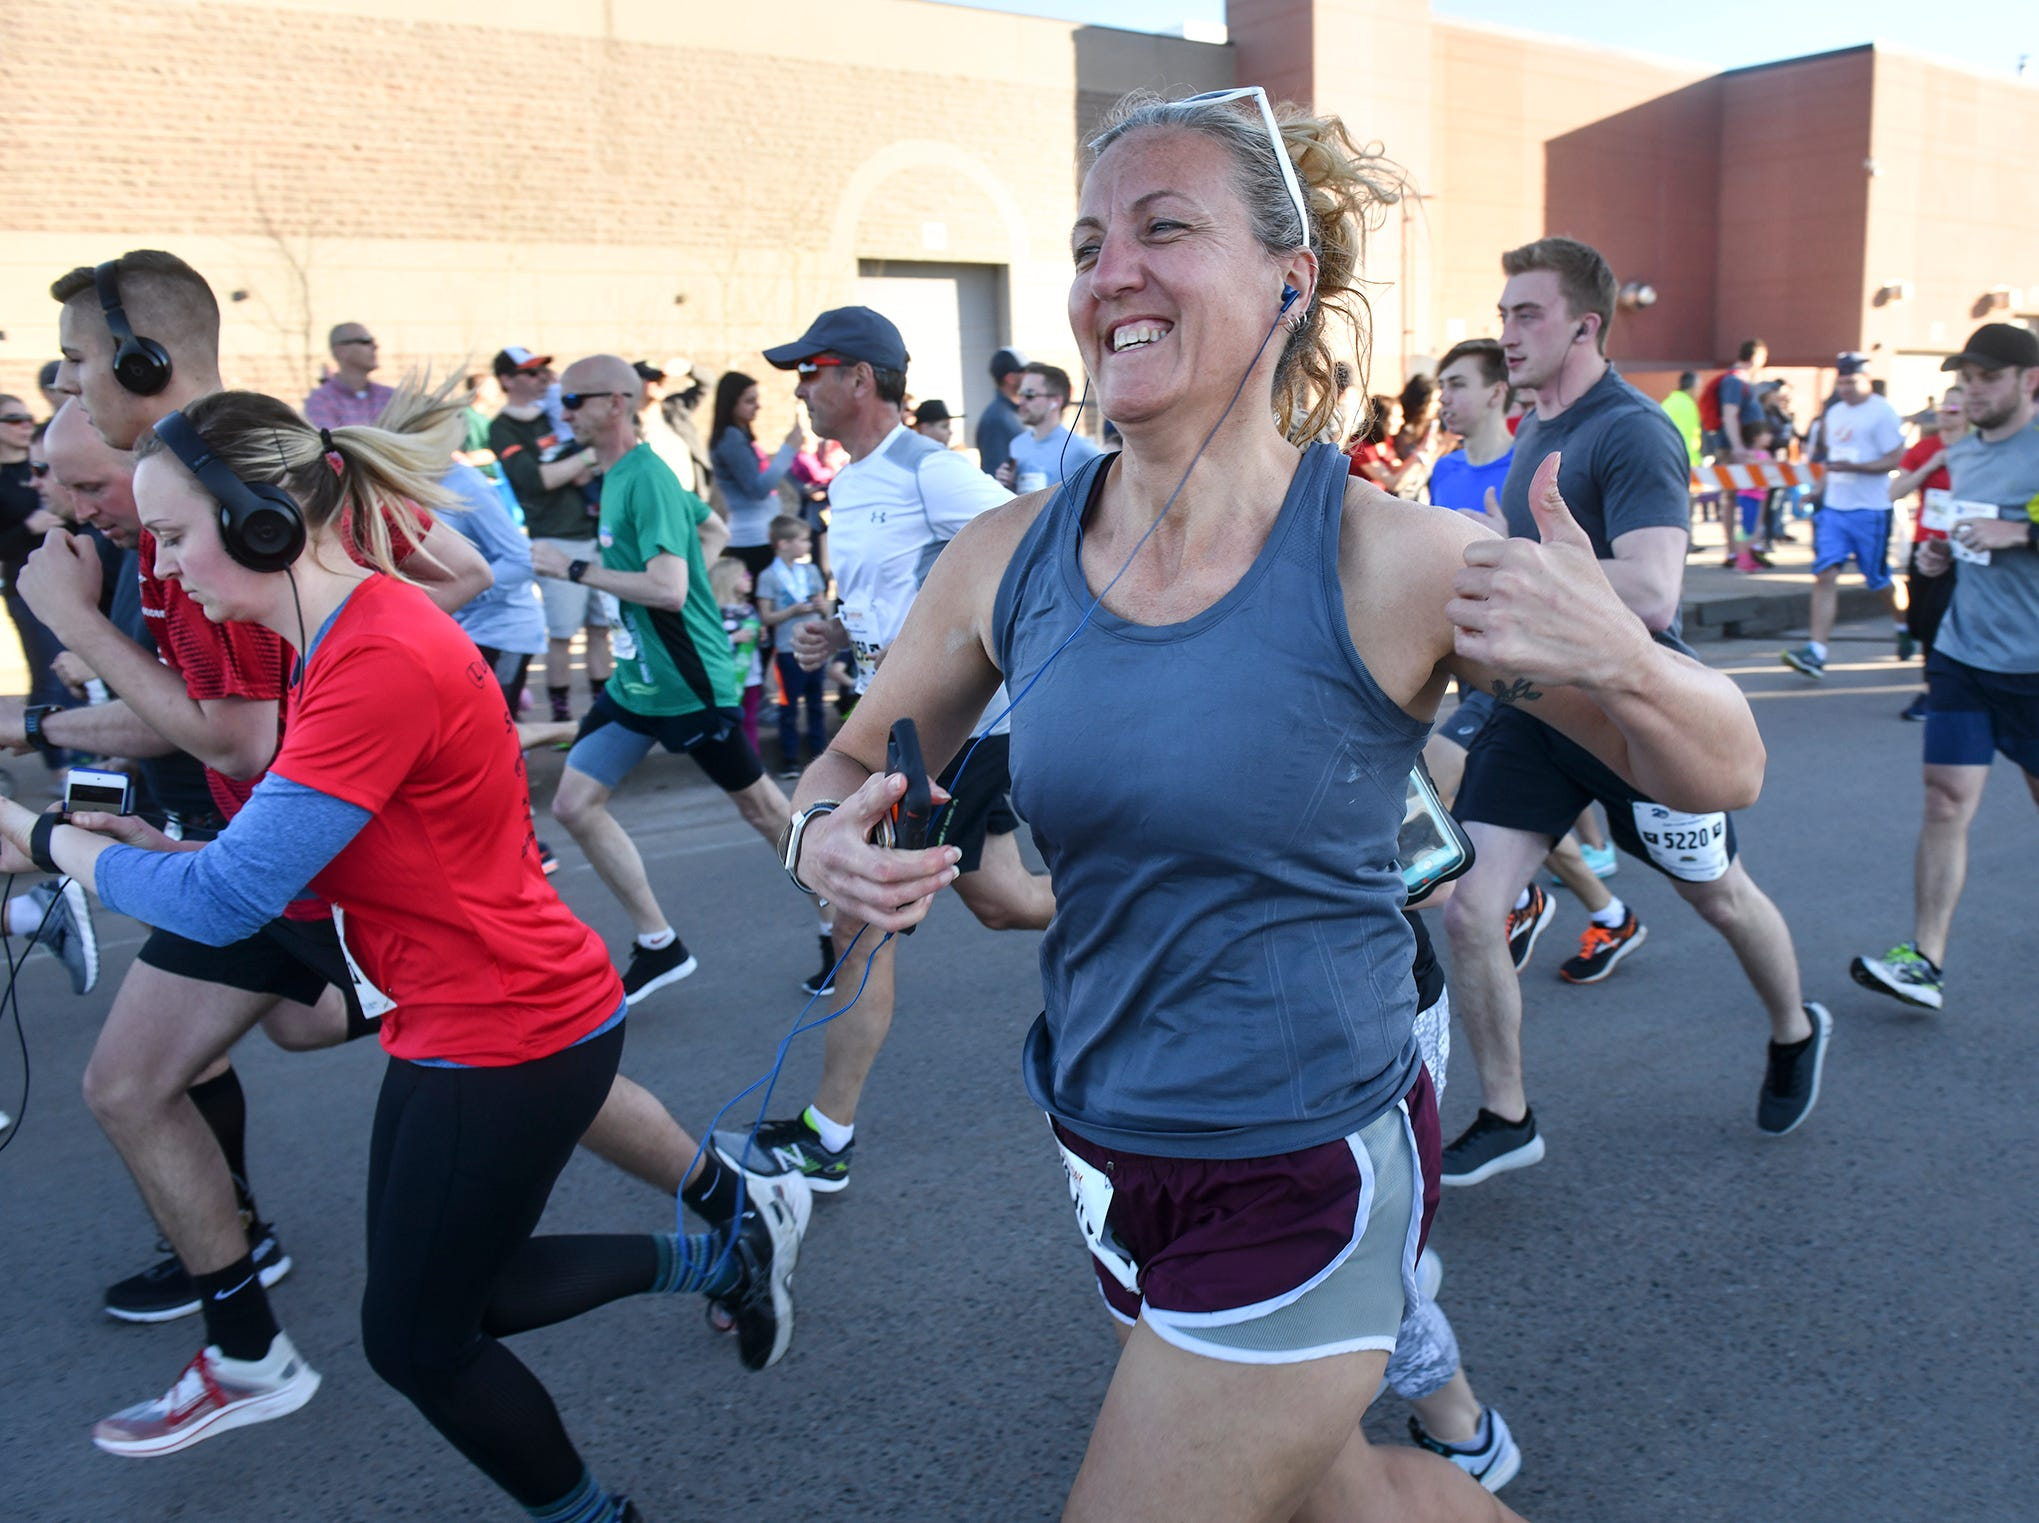 Runners leave the starting line for the the St. Cloud Subaru 5K run/walk Friday in downtown St. Cloud.